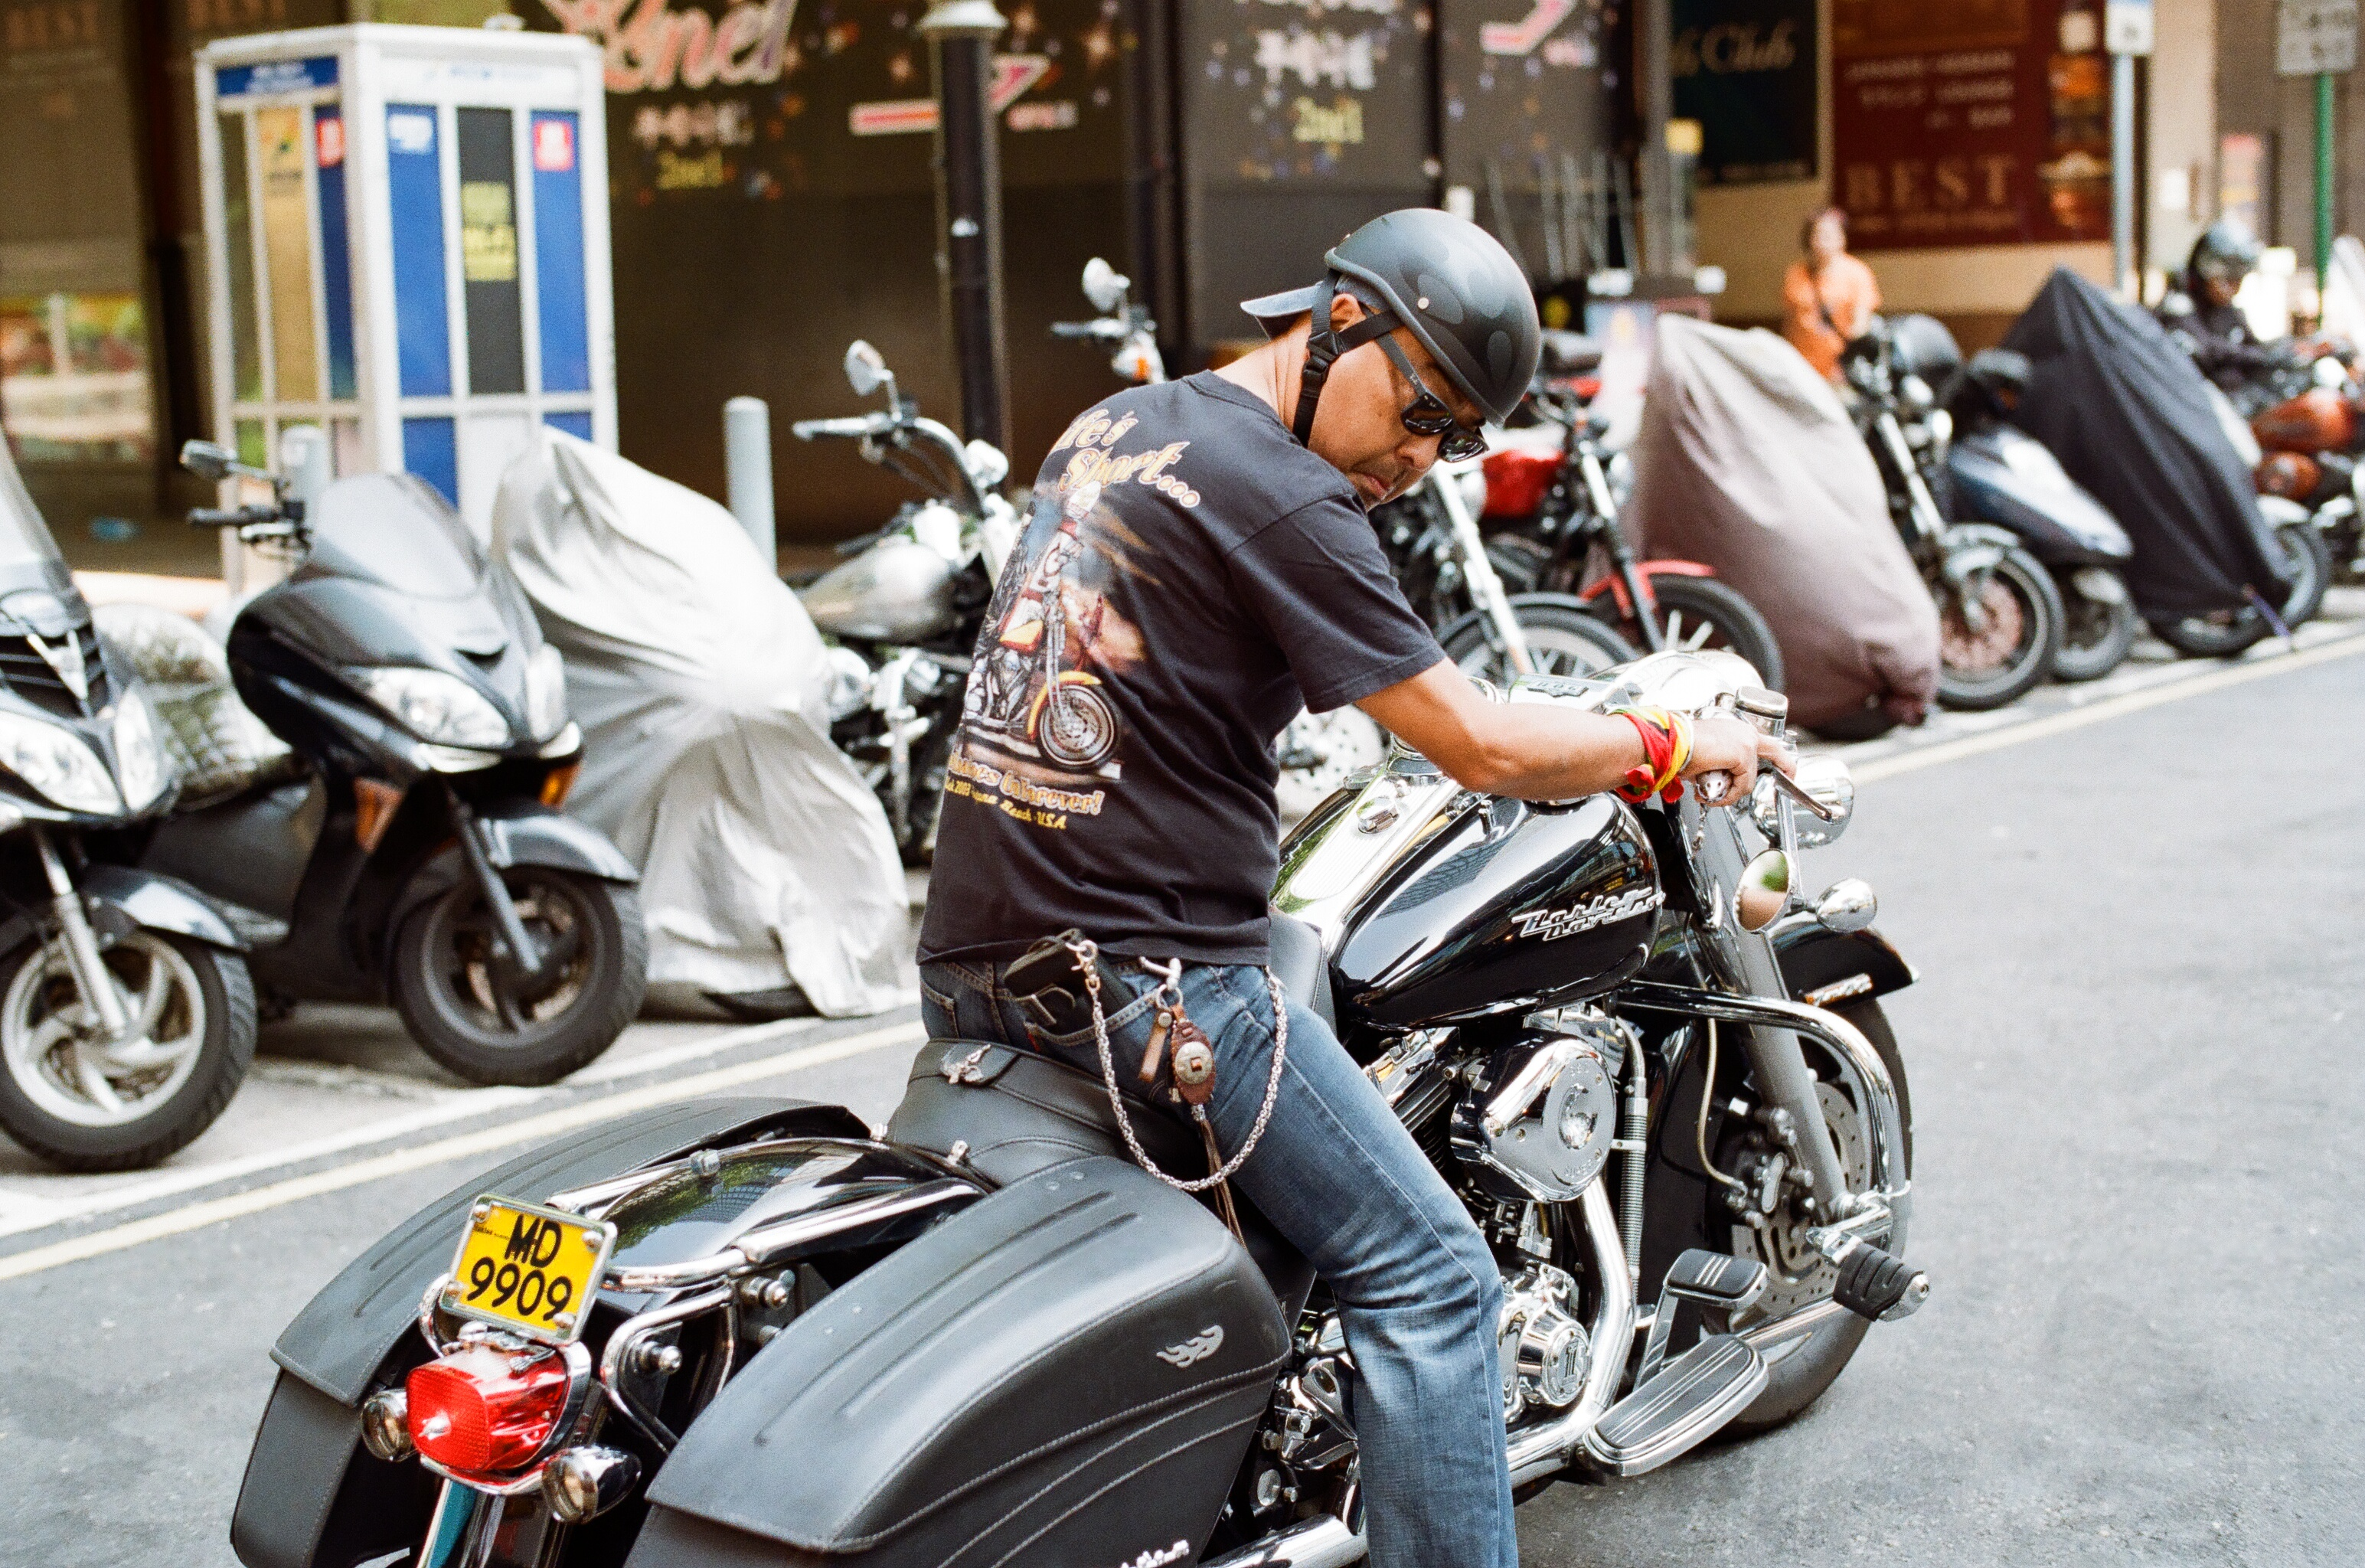 Leica M7 f1.4 iso.100, 100, Motorcycle, Street, Sport, HQ Photo